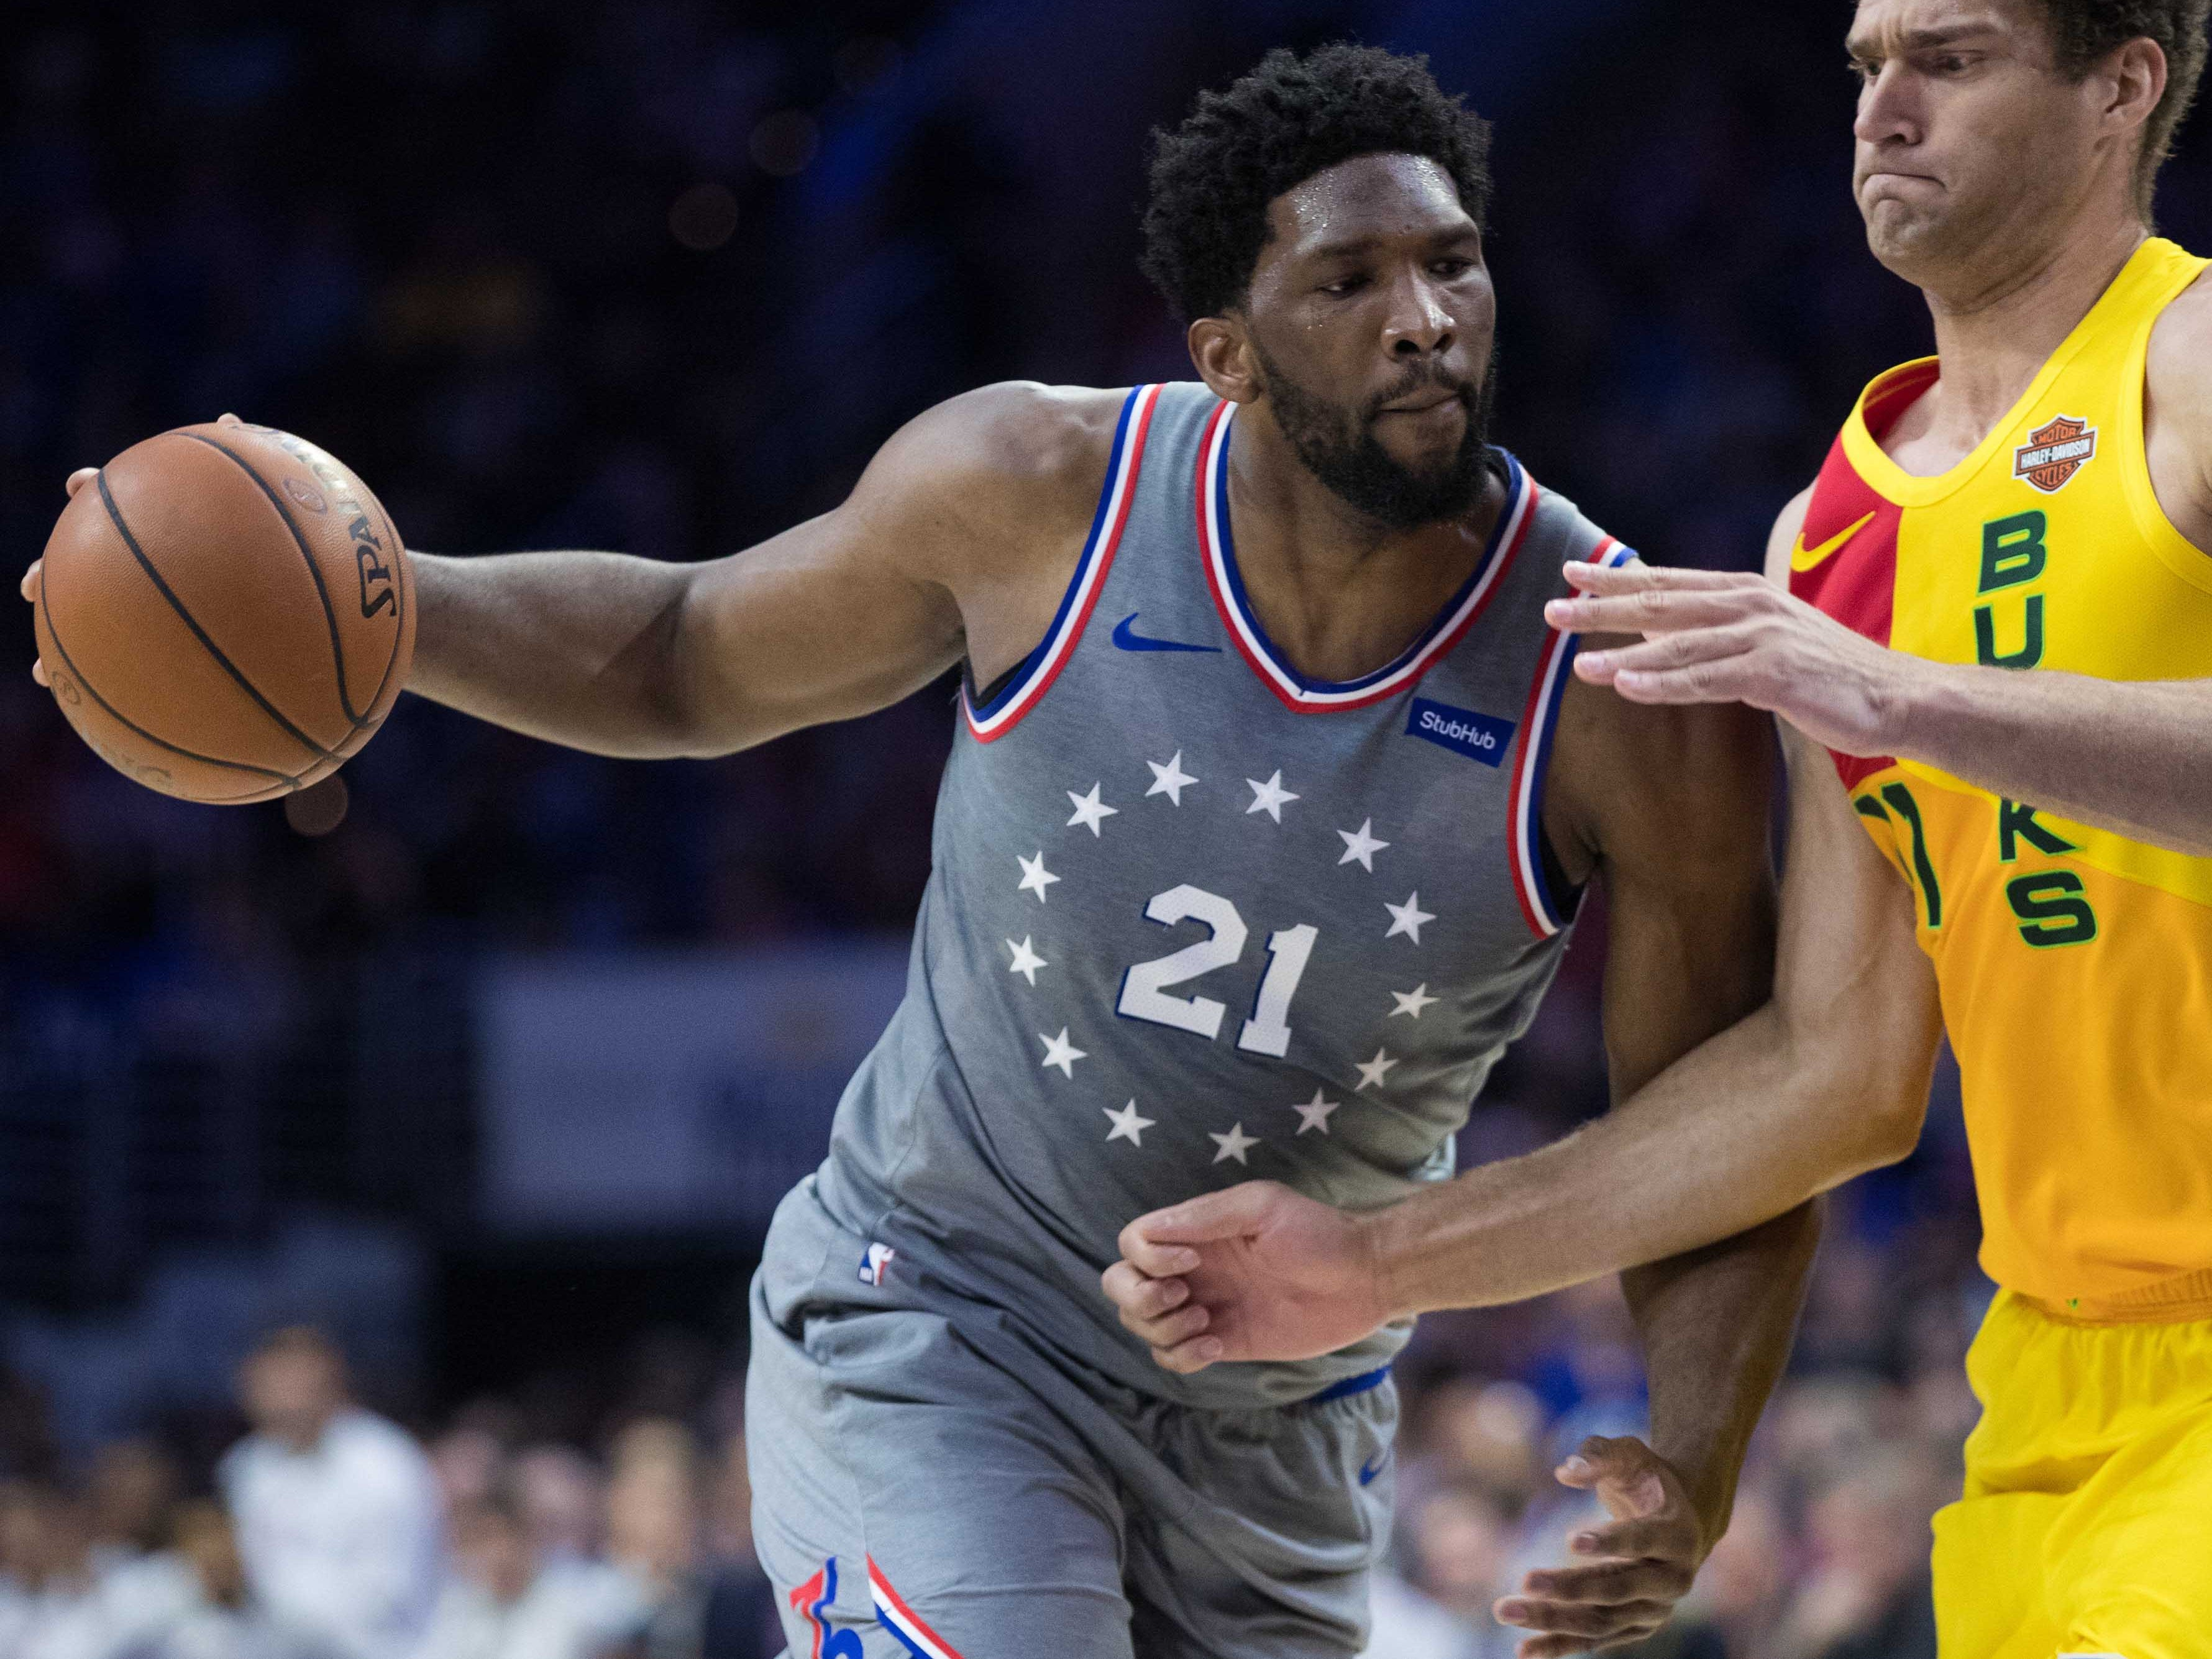 118. Joel Embiid, 76ers (April 4): 34 points, 13 rebounds, 13 assists in 128-122 loss to Bucks (second of season).